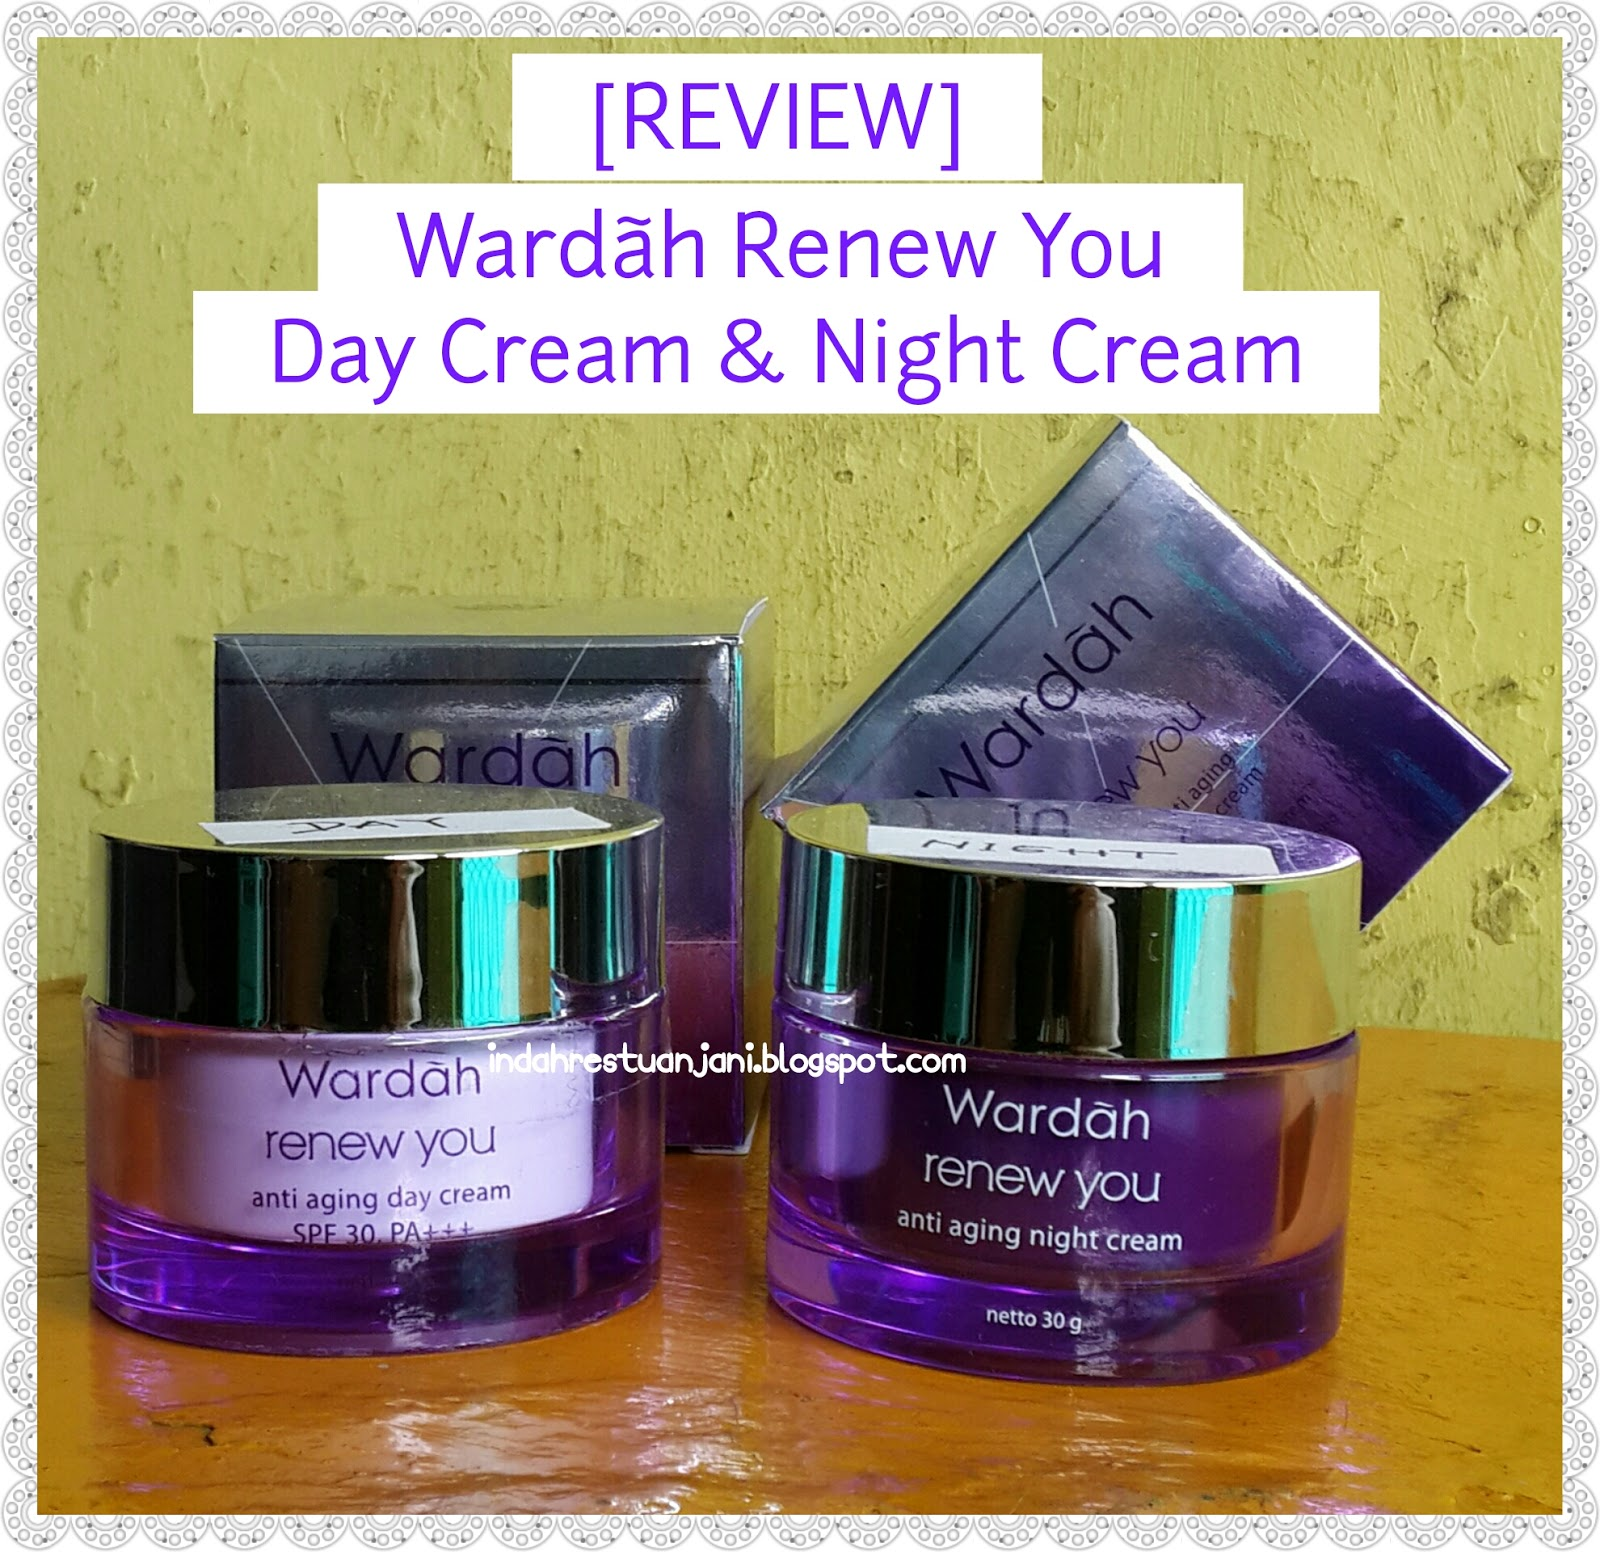 [REVIEW] WARDAH RENEW YOU DAY CREAM & NIGHT CREAM